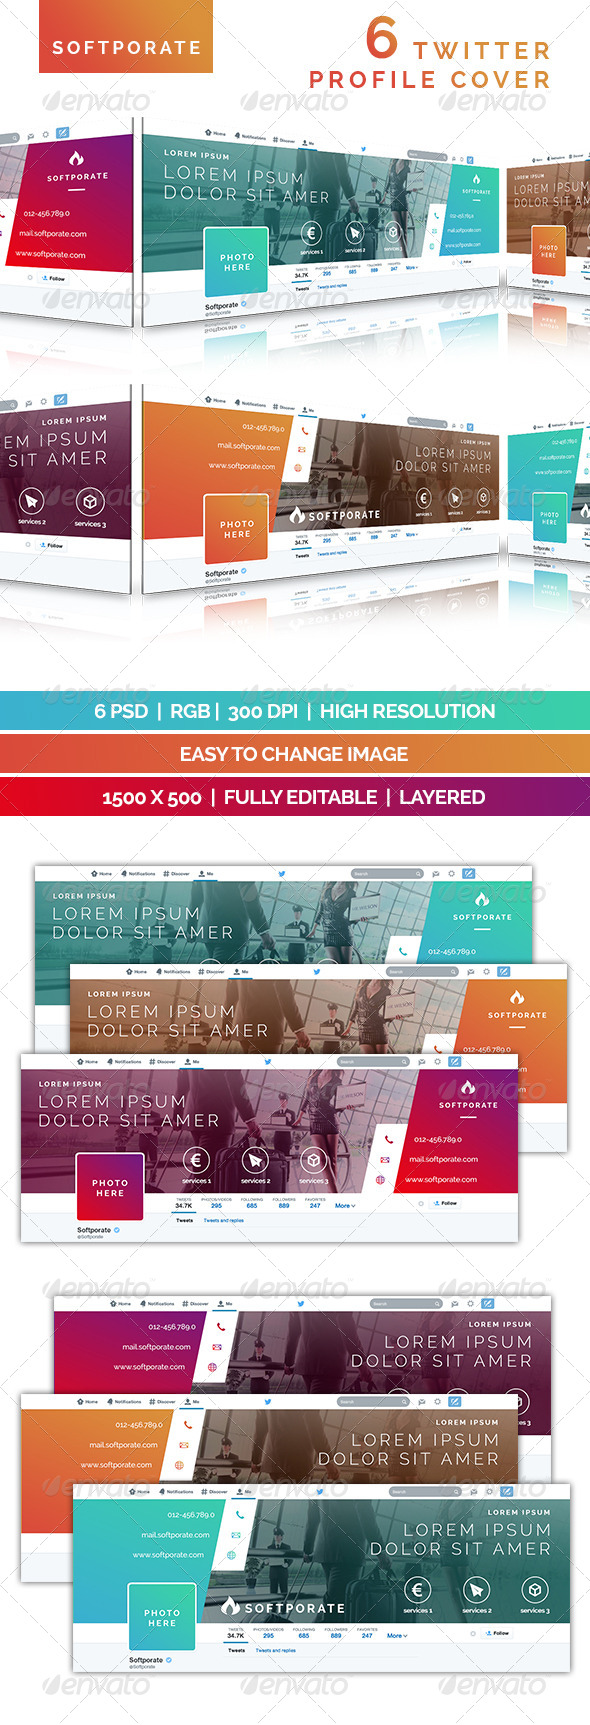 GraphicRiver Softporate Twitter Profile Cover 7817022